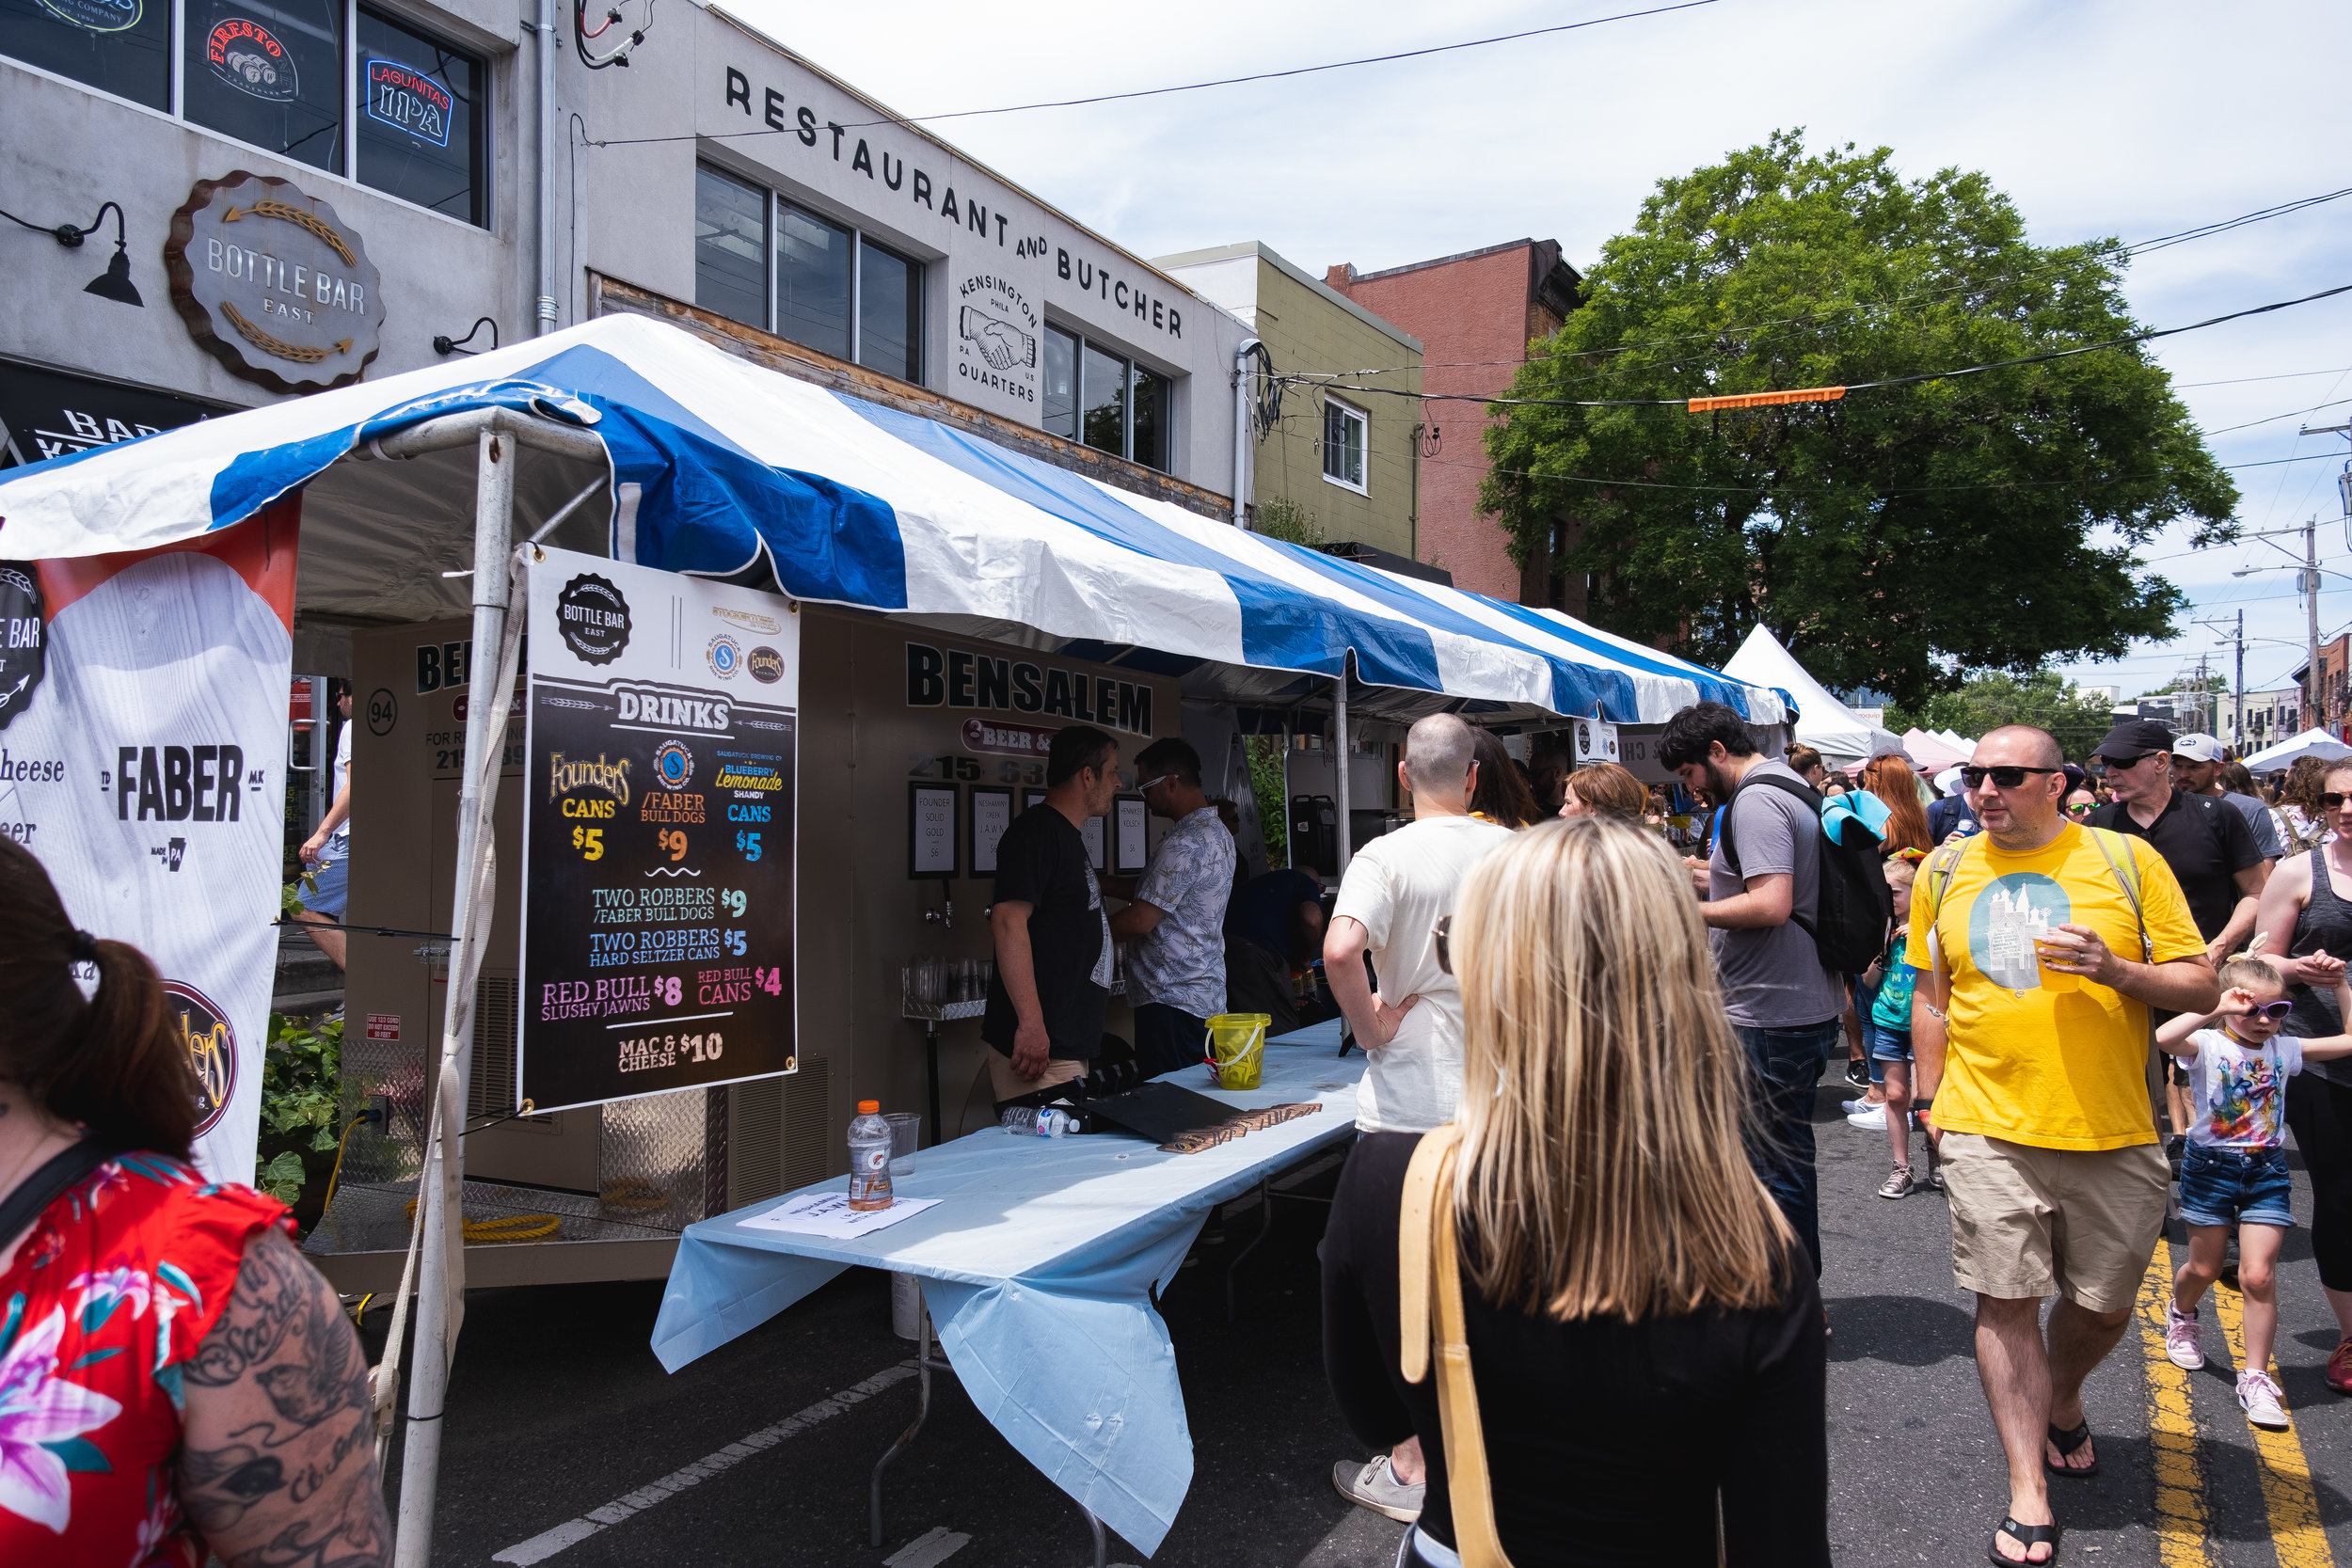 2019_PHILLY BEER WEEK_FISHTOWN FESTIVALE_EVENTS_THE PHILLY CHECKLIST-3.jpg